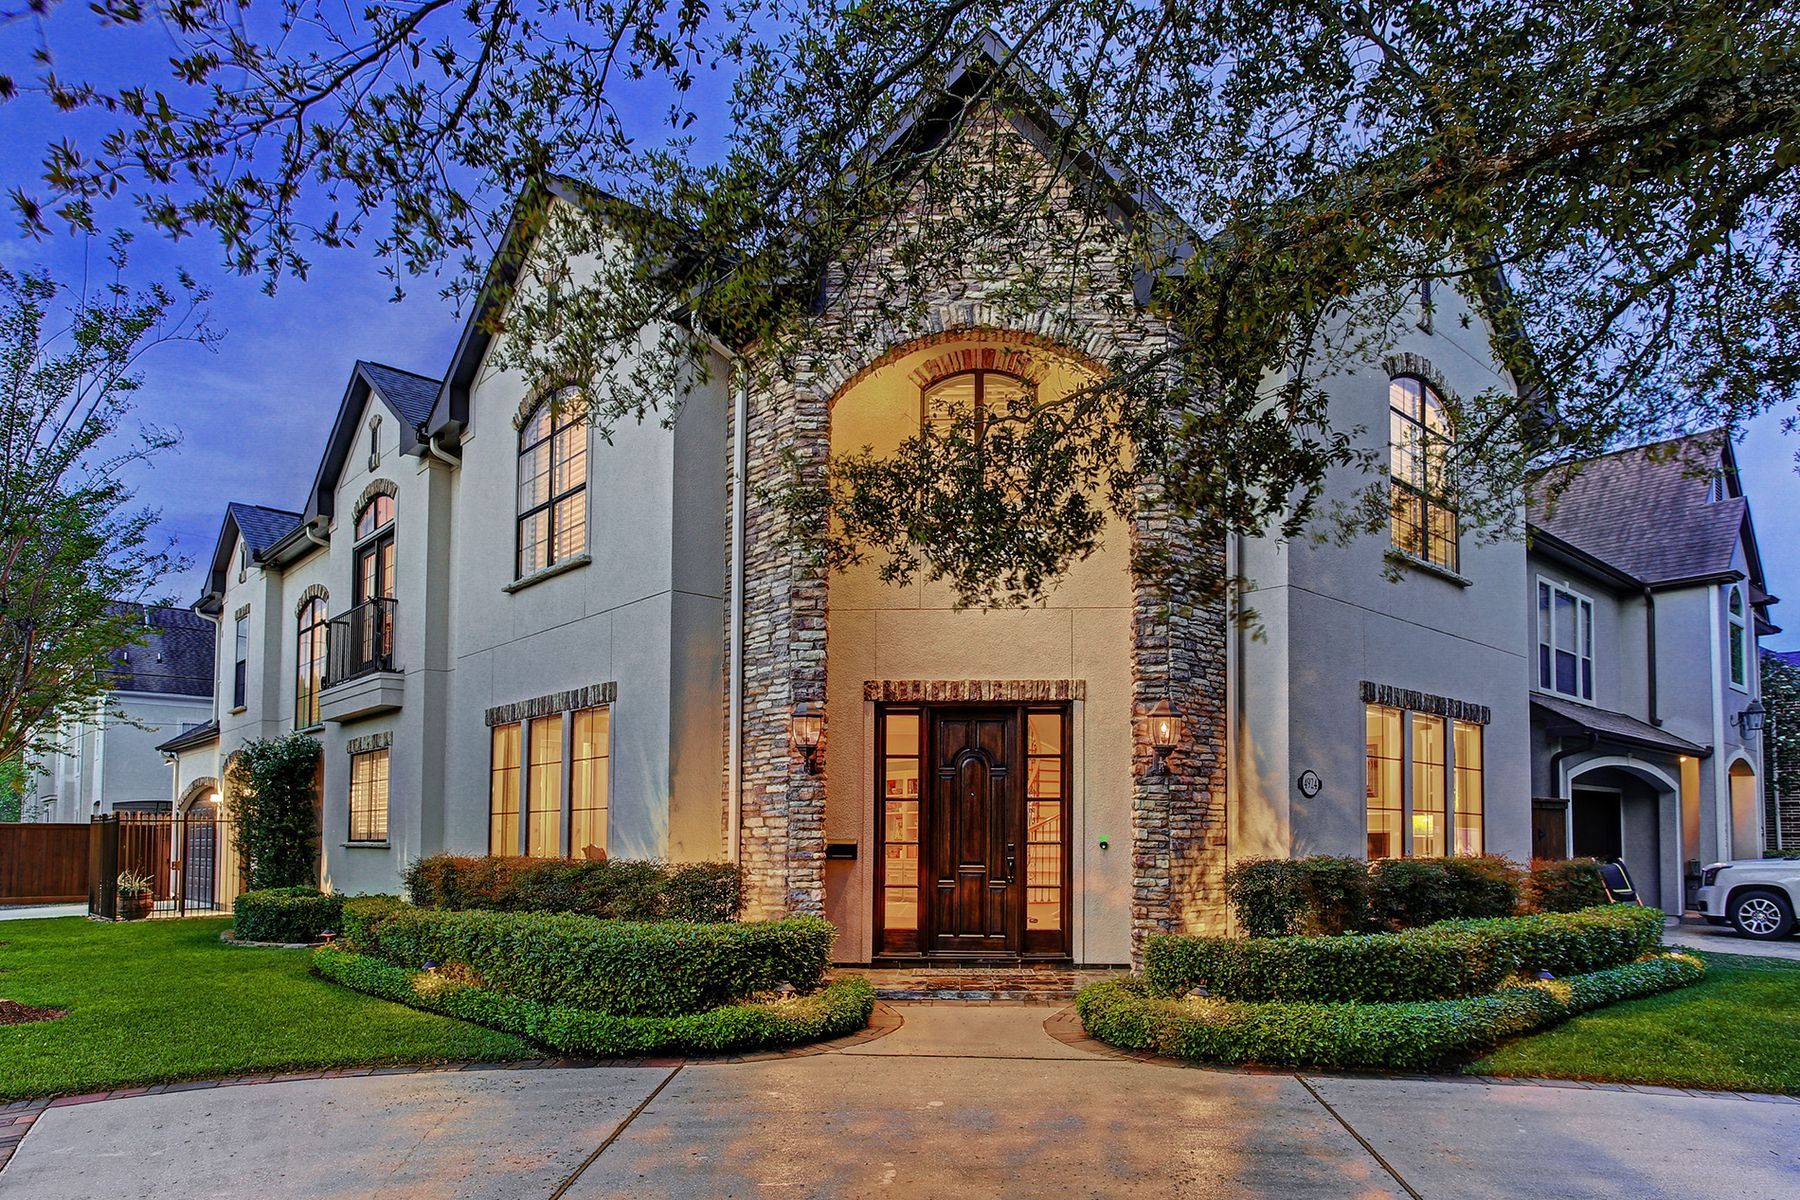 Single Family Homes for Sale at 4924 Chestnut Street Bellaire, Texas 77401 United States